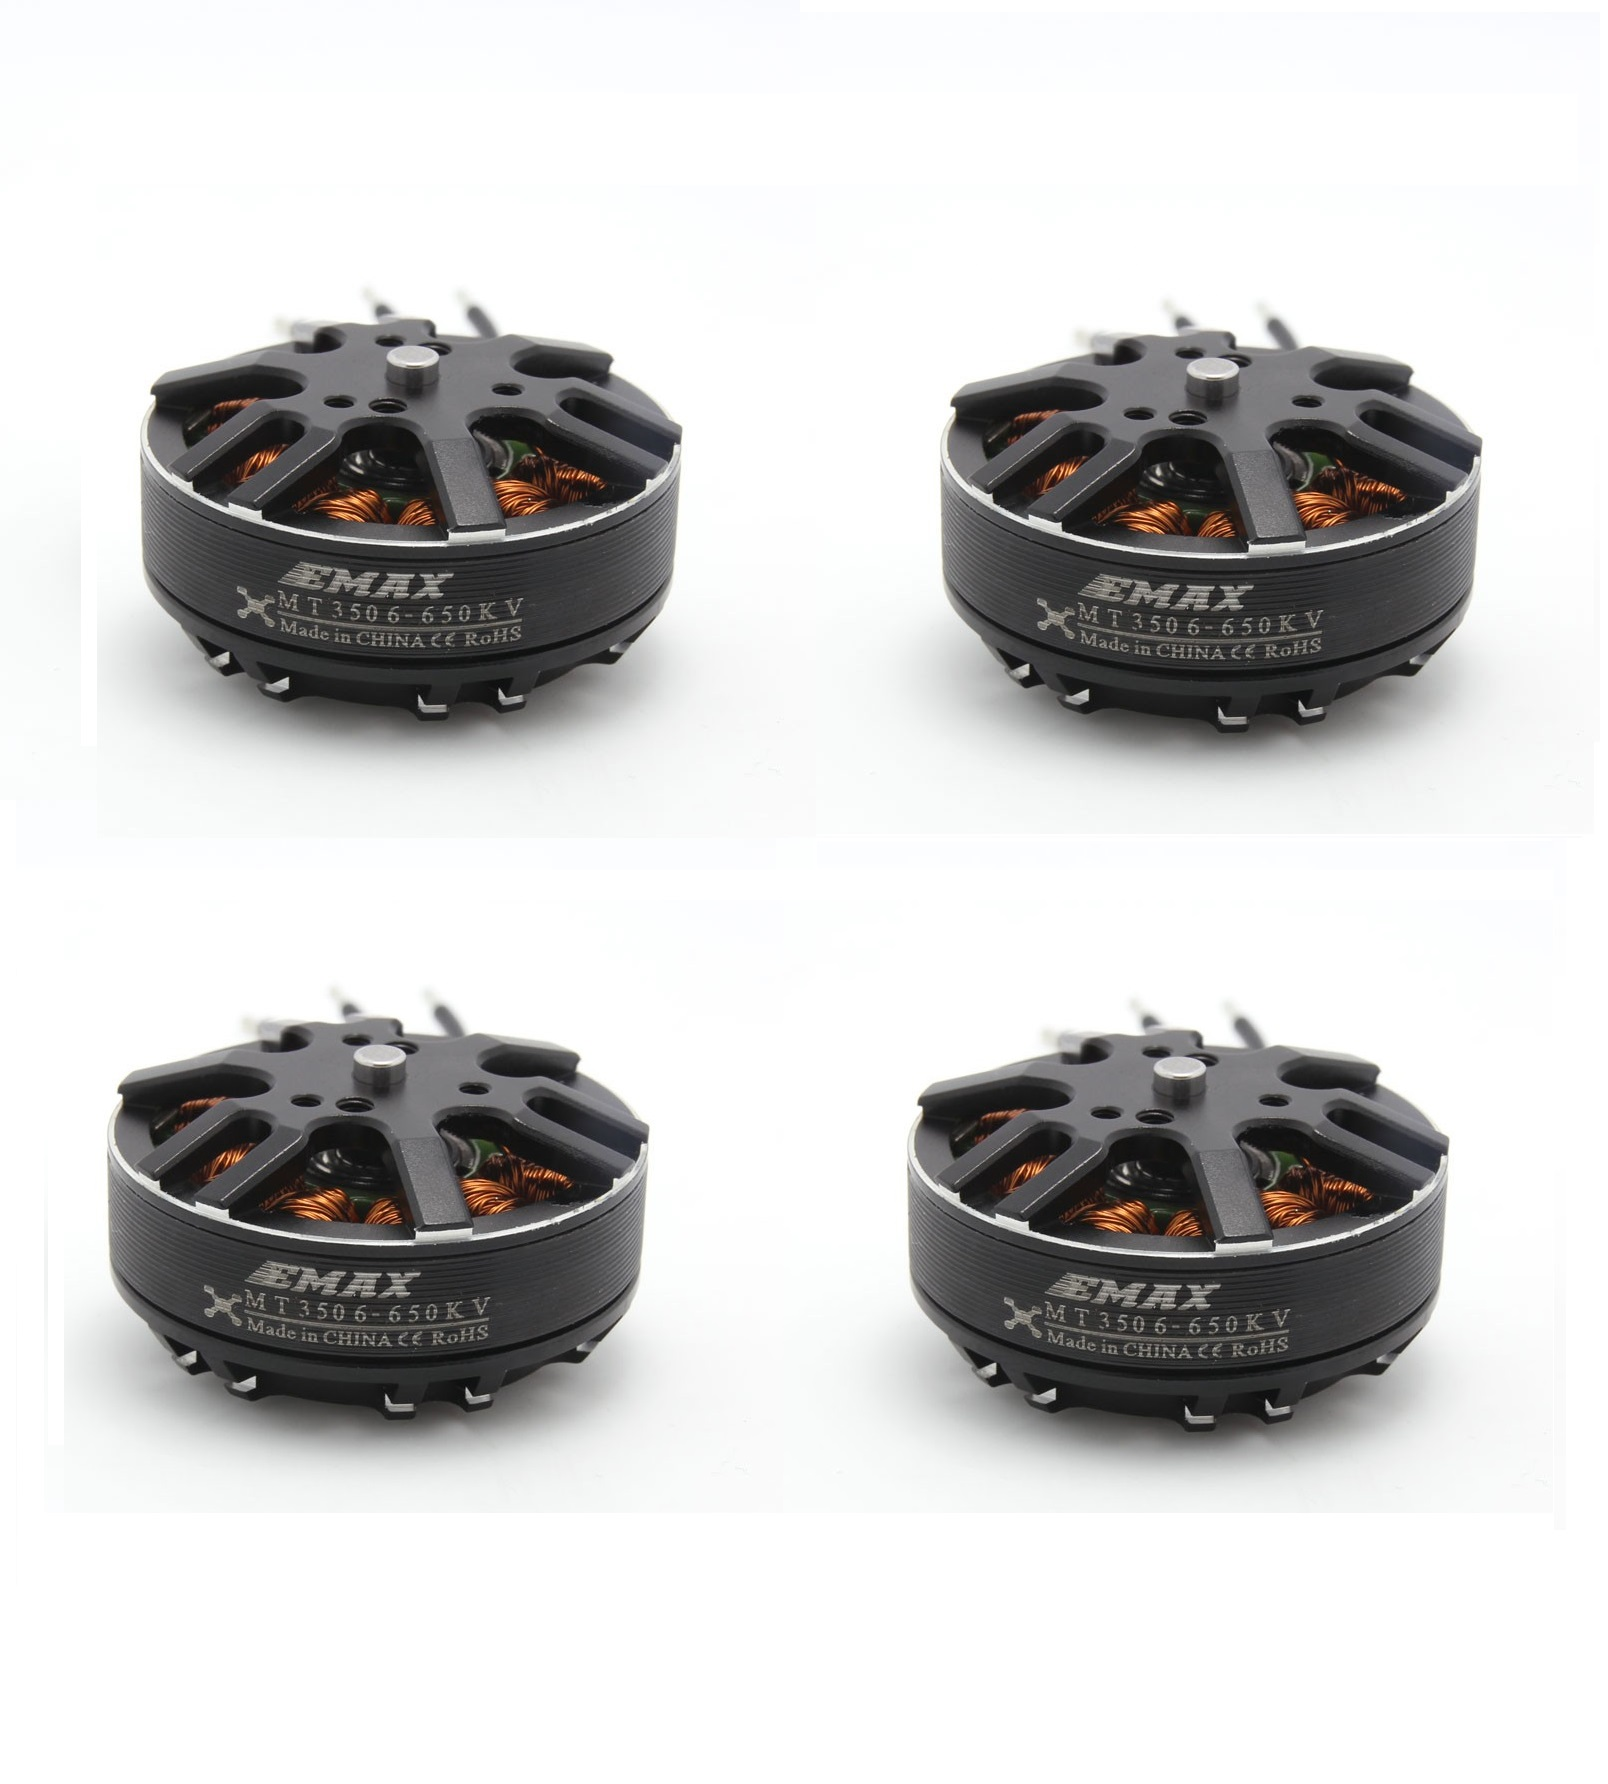 4pcs EMAX Brushless Motor MT3506 650KV KV650 Plus Thread Motor for RC FPV Multicopter Quadcopter Part learning carpets us map carpet lc 201